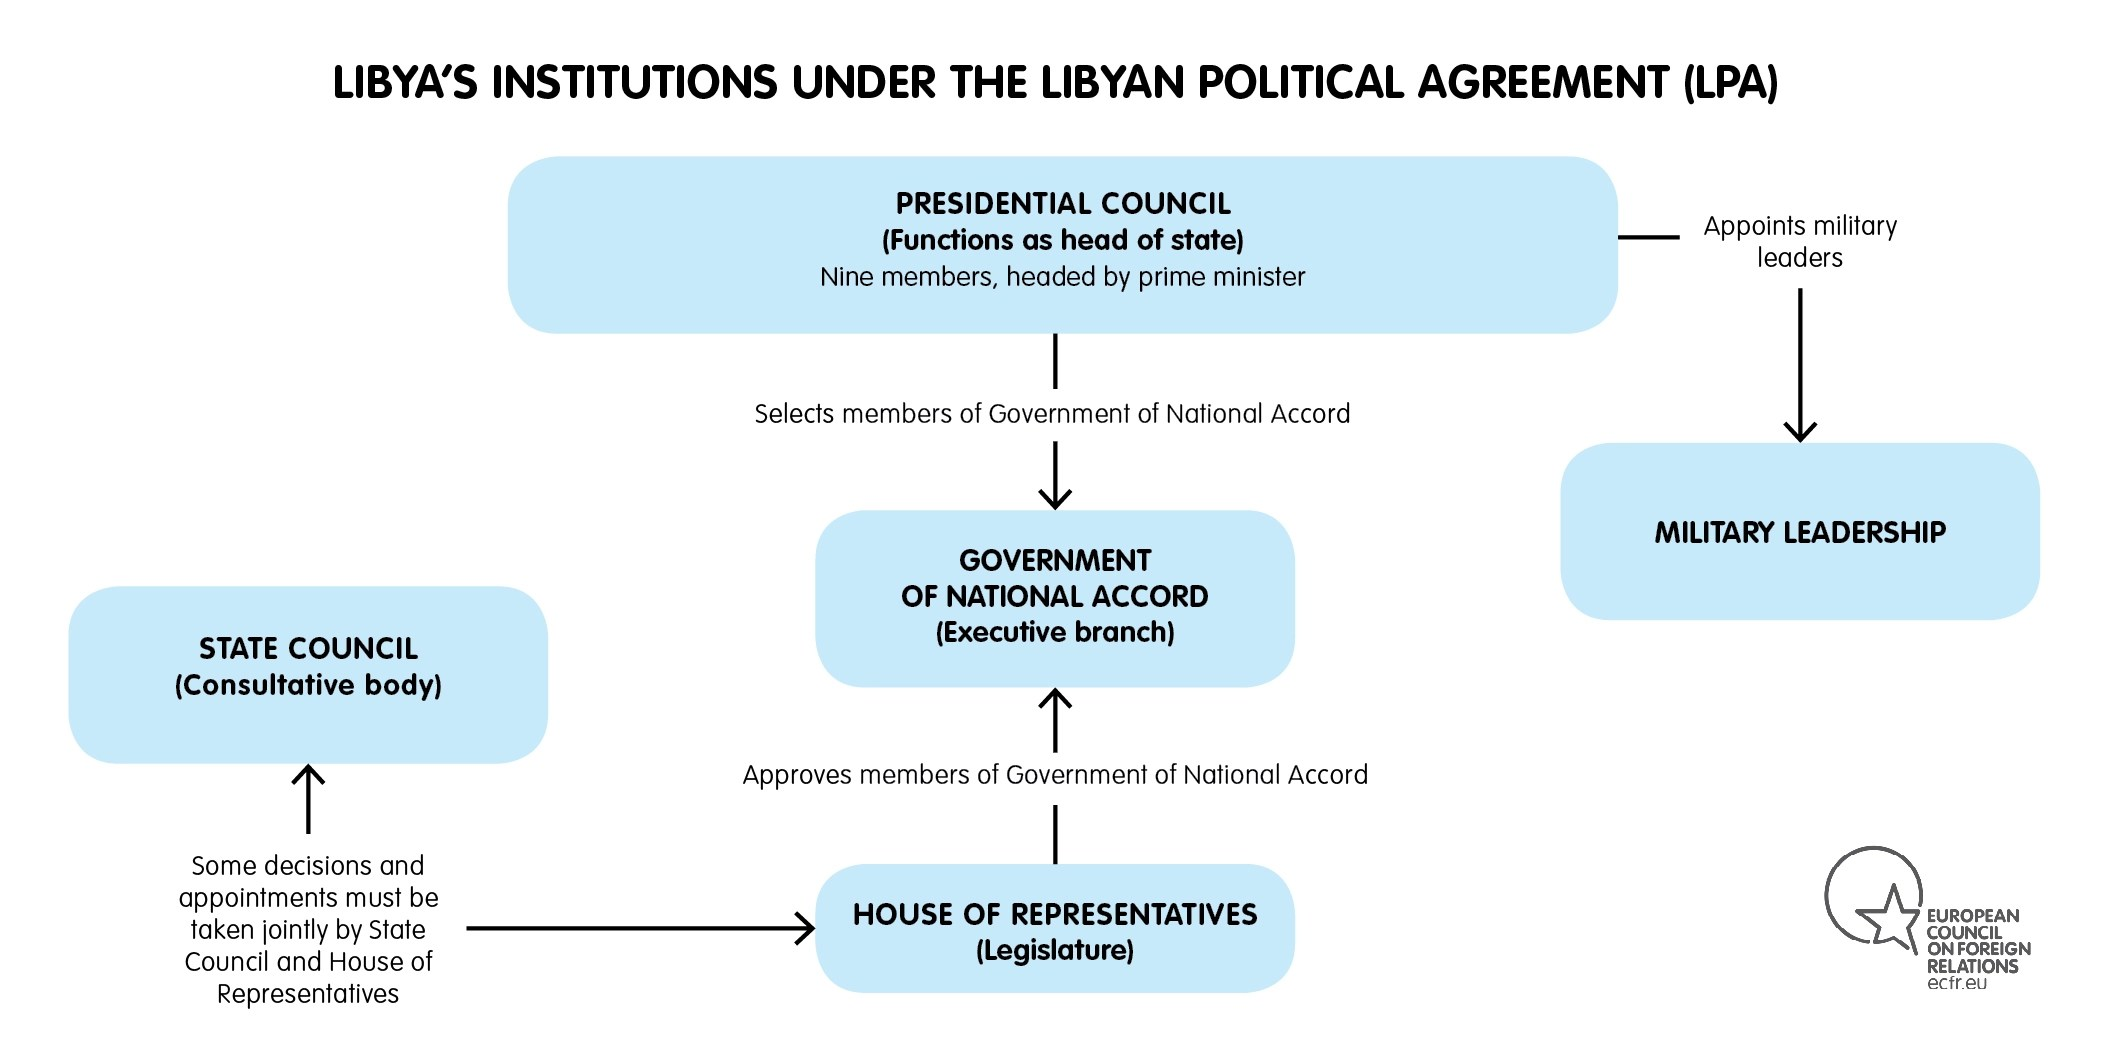 MAP OF LIBYA INSTITUTIONS UNDER THE LPA 2016